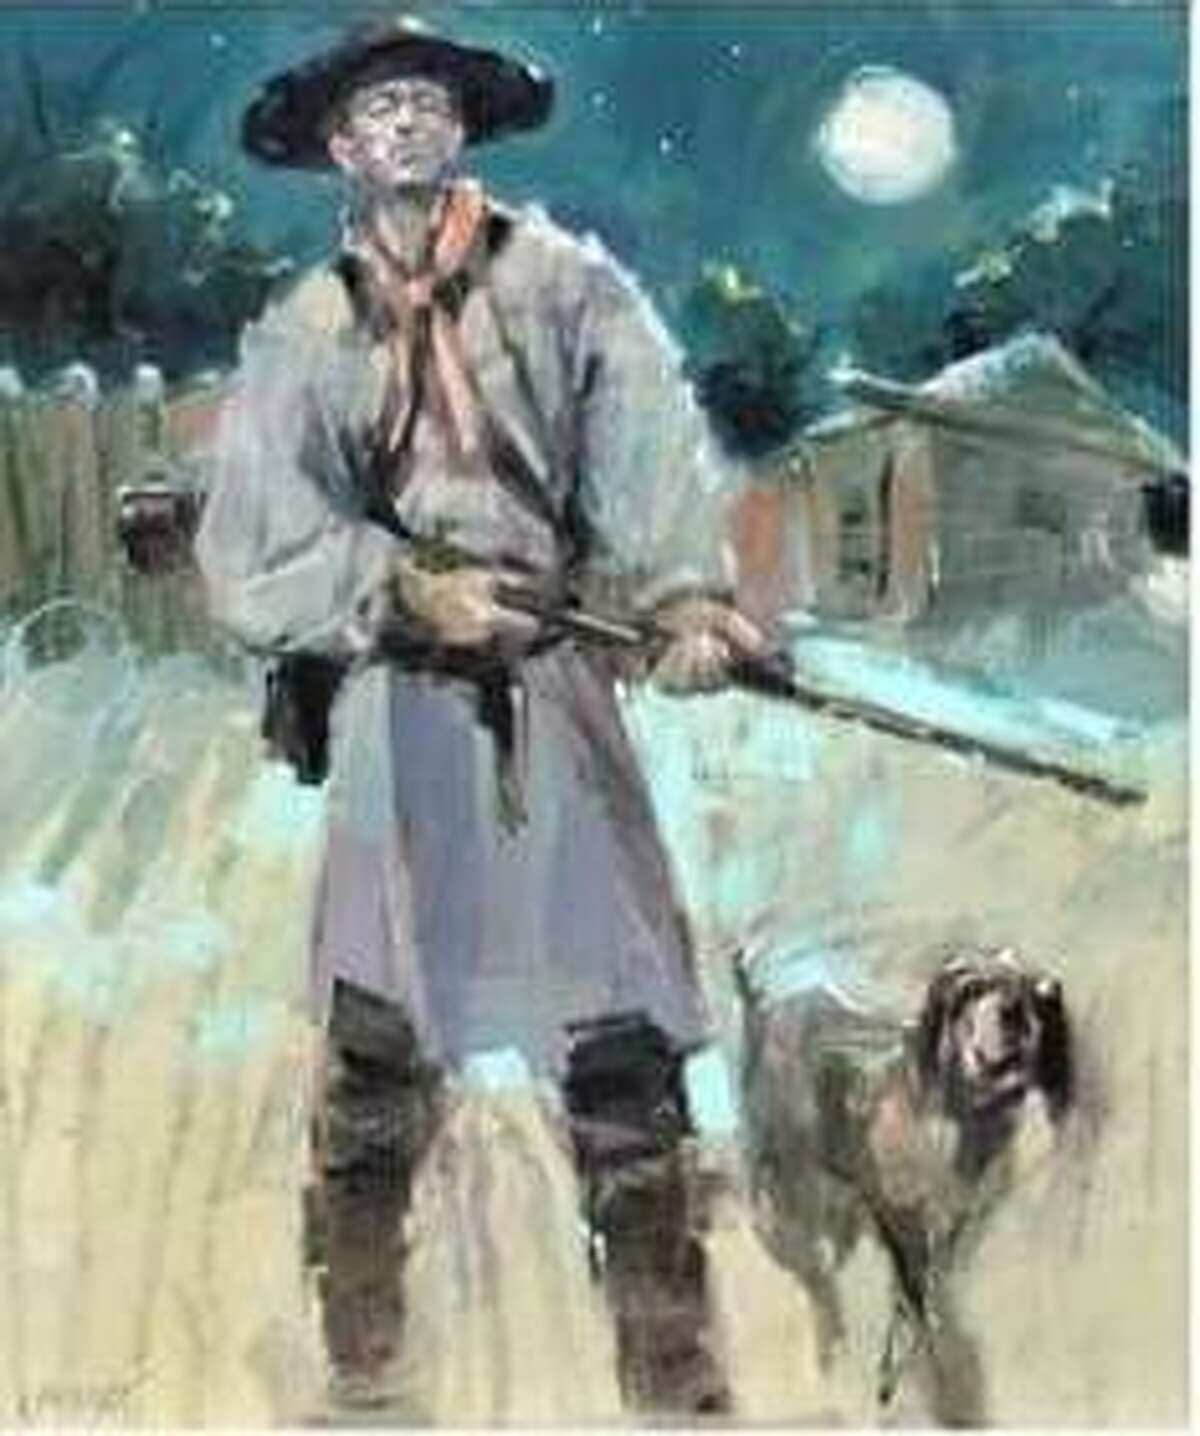 """""""Nightwatch,"""" an original 20-by-24-inch oil painting by Granite City artist Lon Brauer, will be raffled off during the located. A raffle for the artwork, valued at $3,200, will be offered during the Camp du Bois Trade Faire April 10-11 at 198 N. Main St., Wood River, near the Lewis and Clark State Historic Site."""